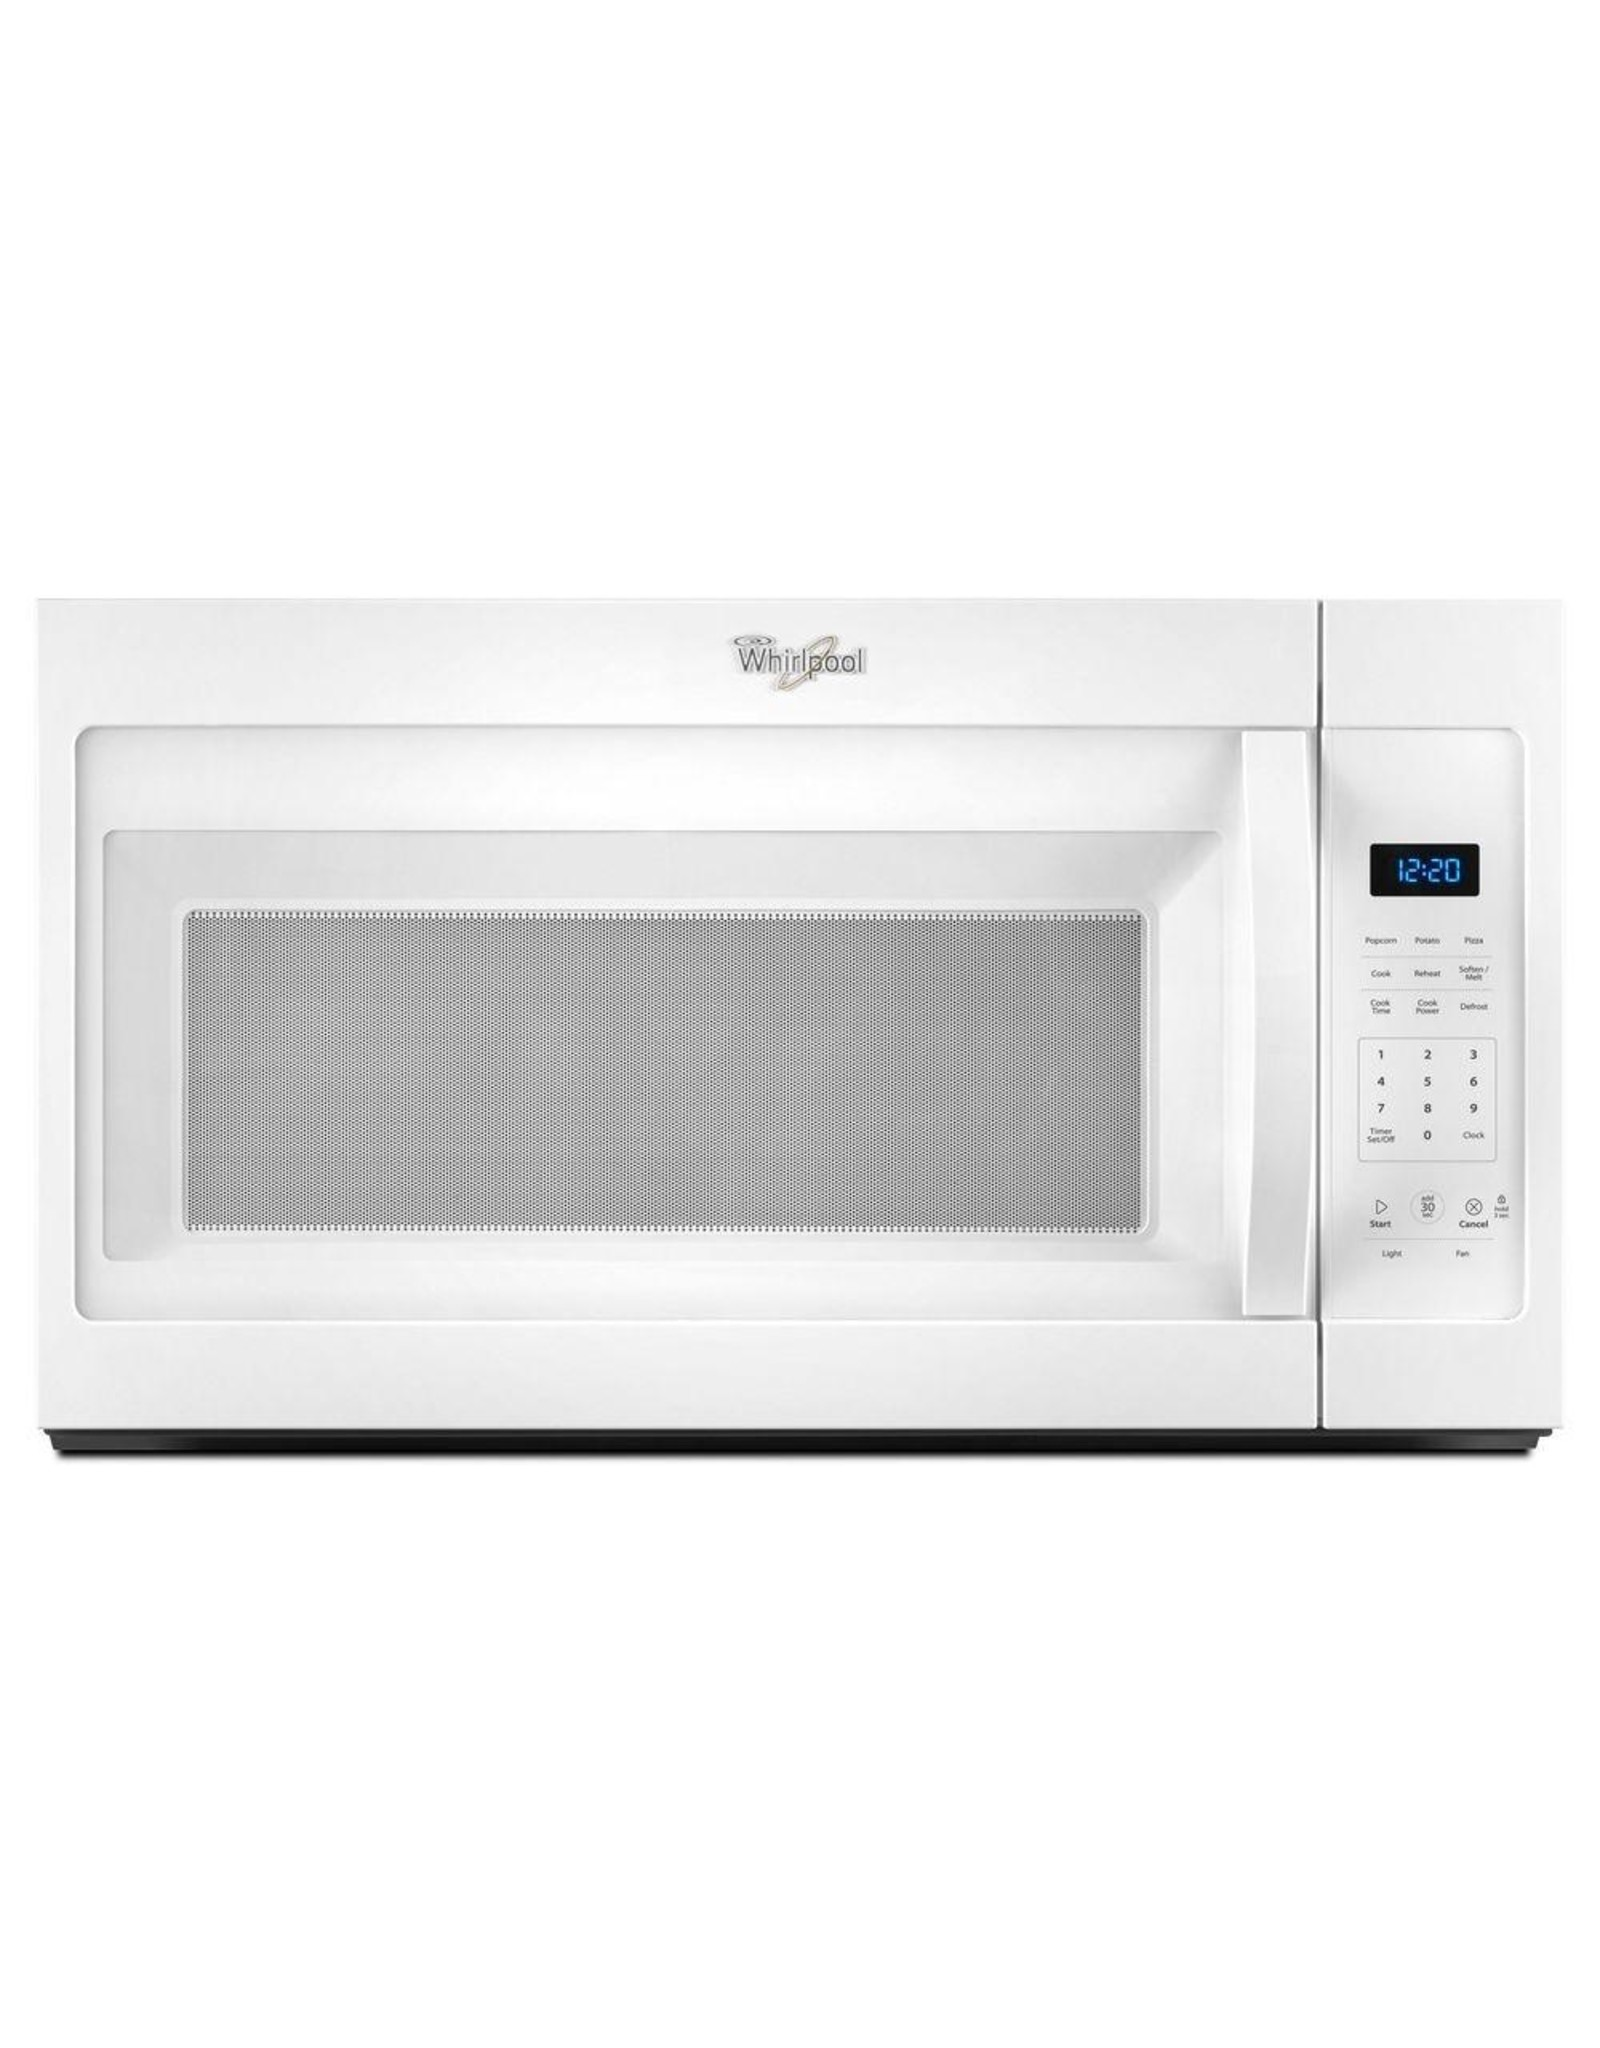 WHIRLPOOL WMH31017FW  WHR Microwave, Hood, Combination - 1.7 CU FT, 1000 WATTS, 2-PIECE FRONT, ST